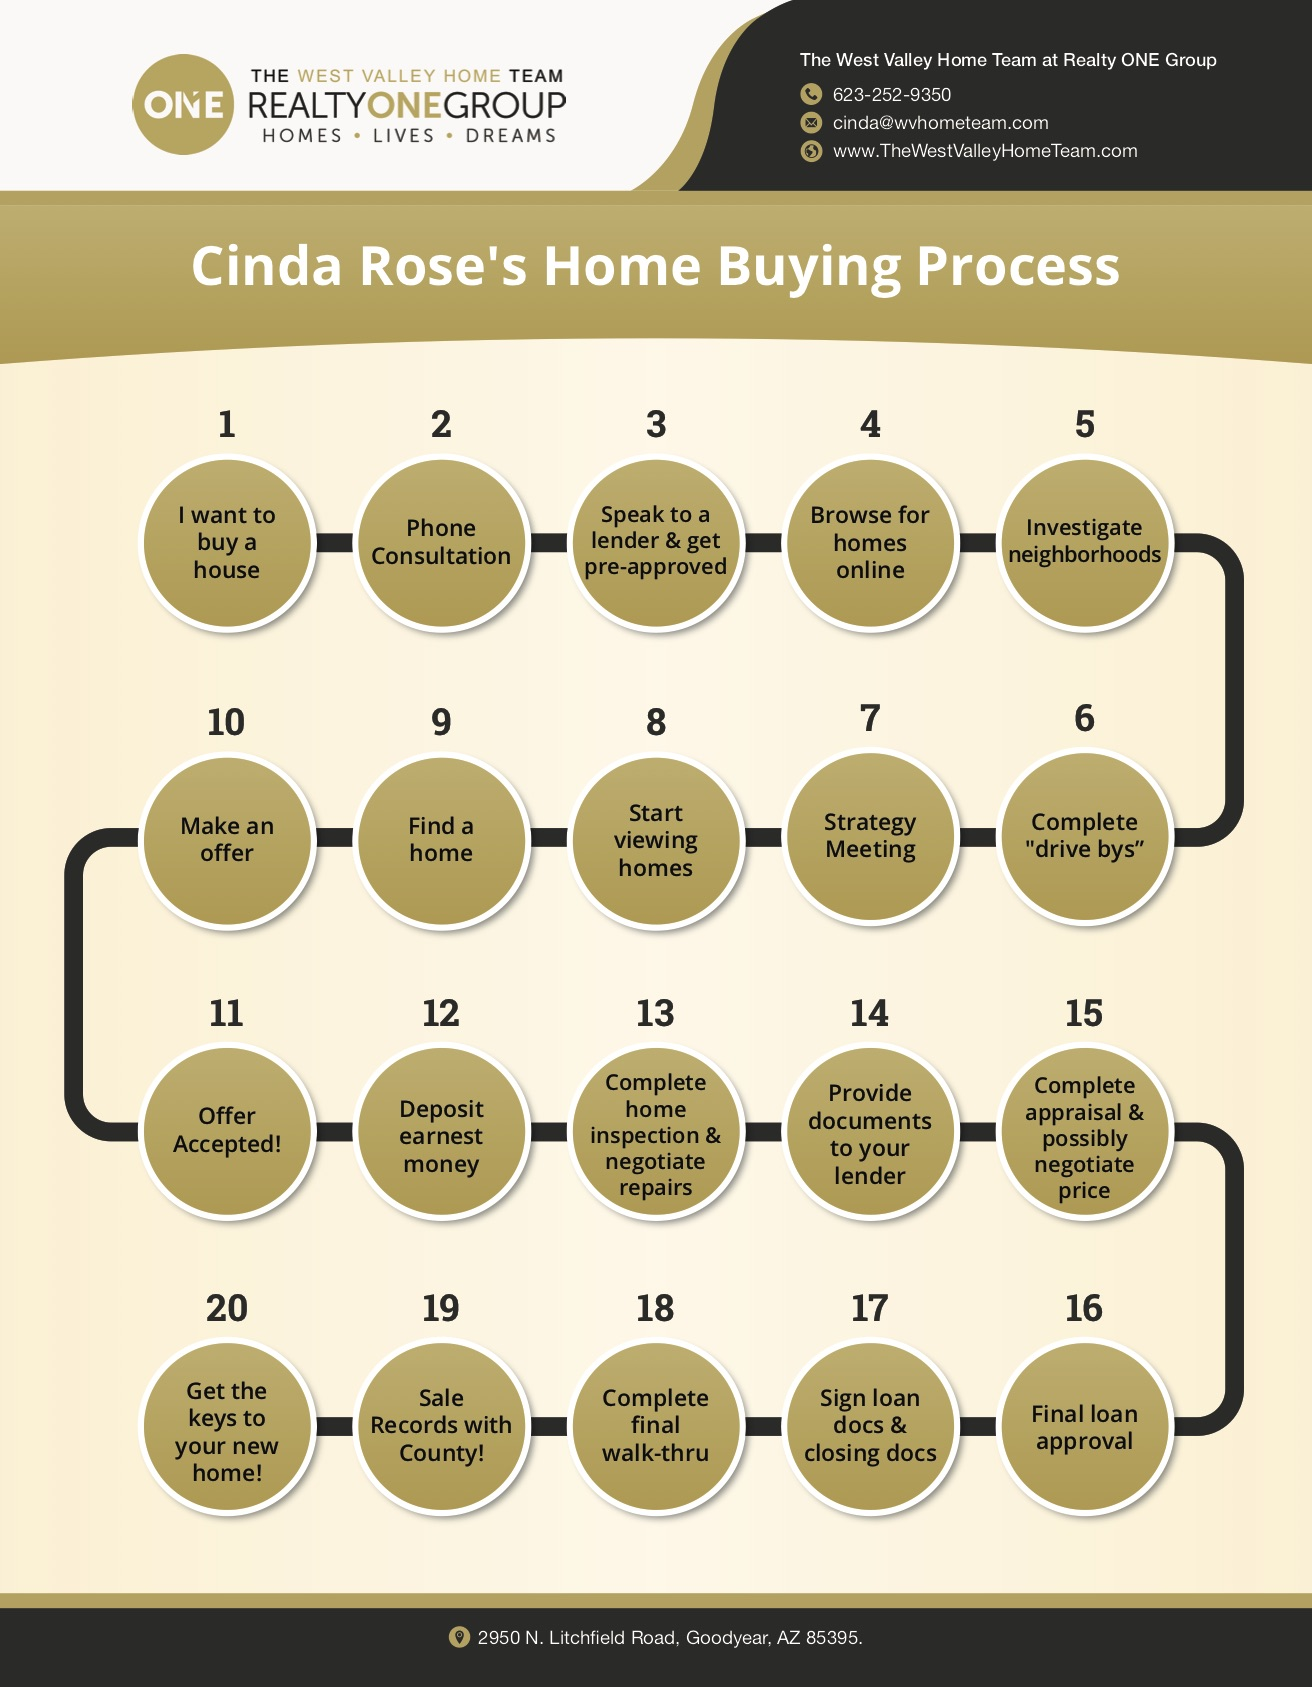 Home Buying Process, Your Guide to Buying a Home